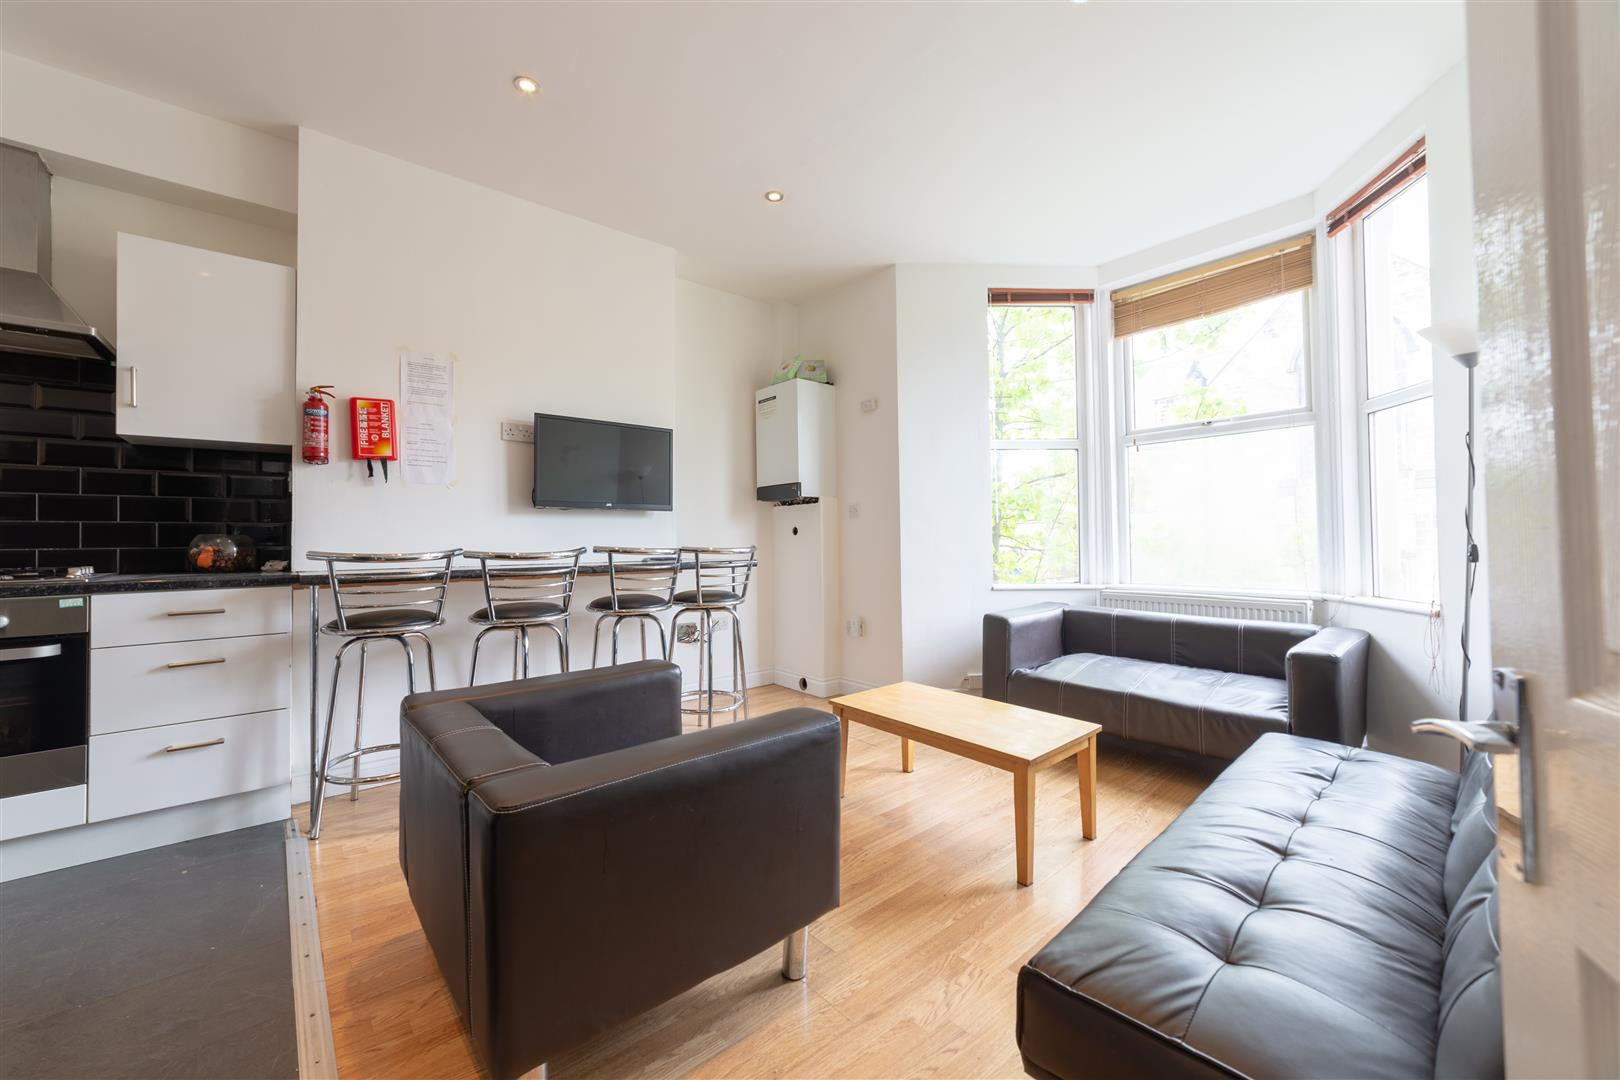 6 bed apartment to rent in Newcastle Upon Tyne, NE6 5JX - Property Image 1